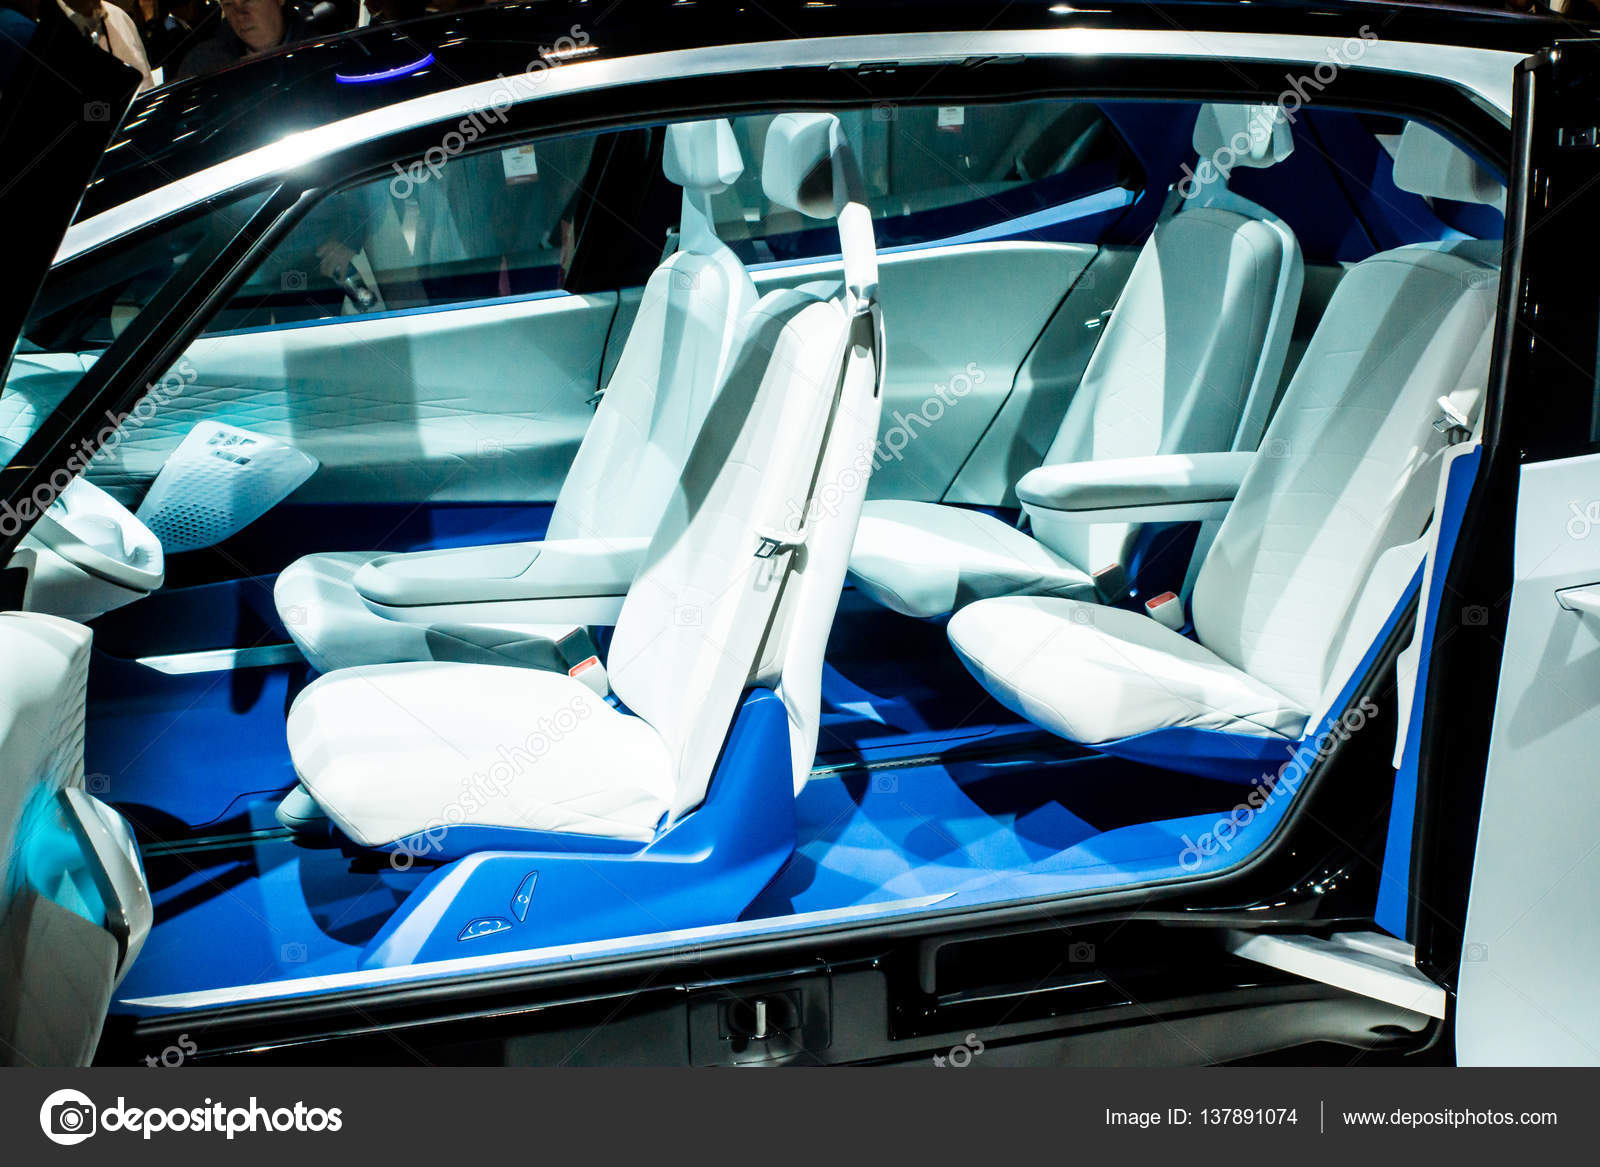 Volkswagen Electric Concept Car At CES Stock Editorial Photo - Vw car show las vegas